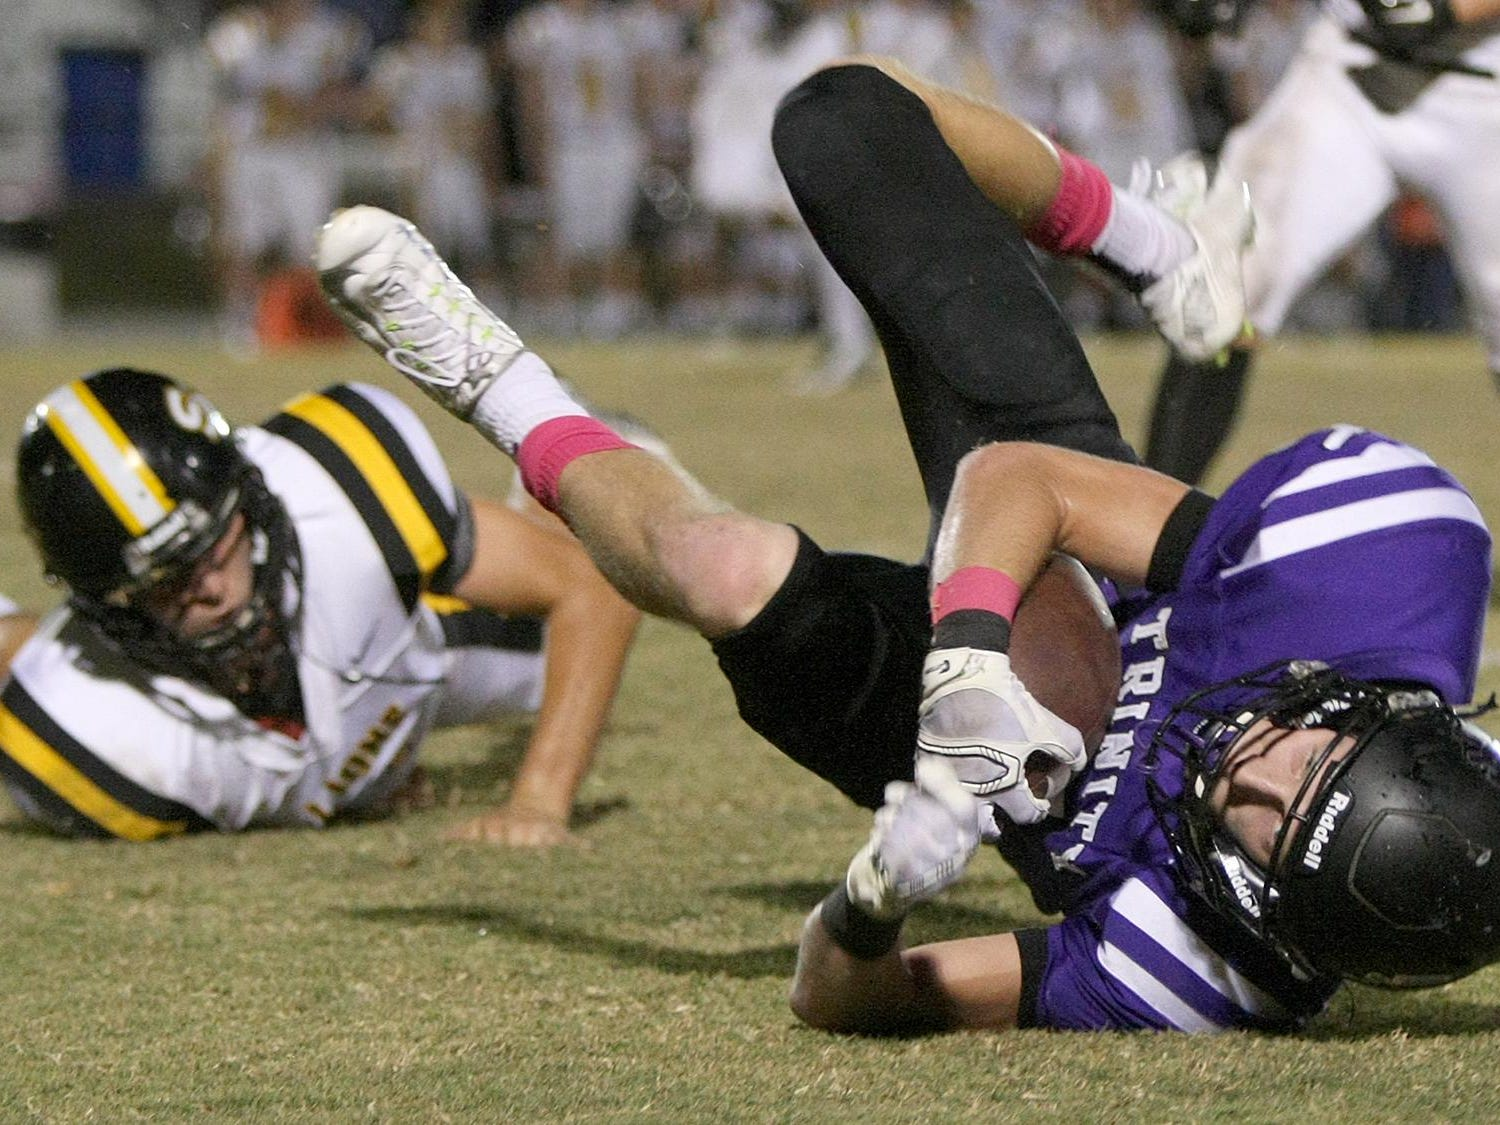 Trinity Christian Academy's Eli Parker (5) is tripped up by Scotts Hill's Michael Lyles (12) at TCA on Friday.